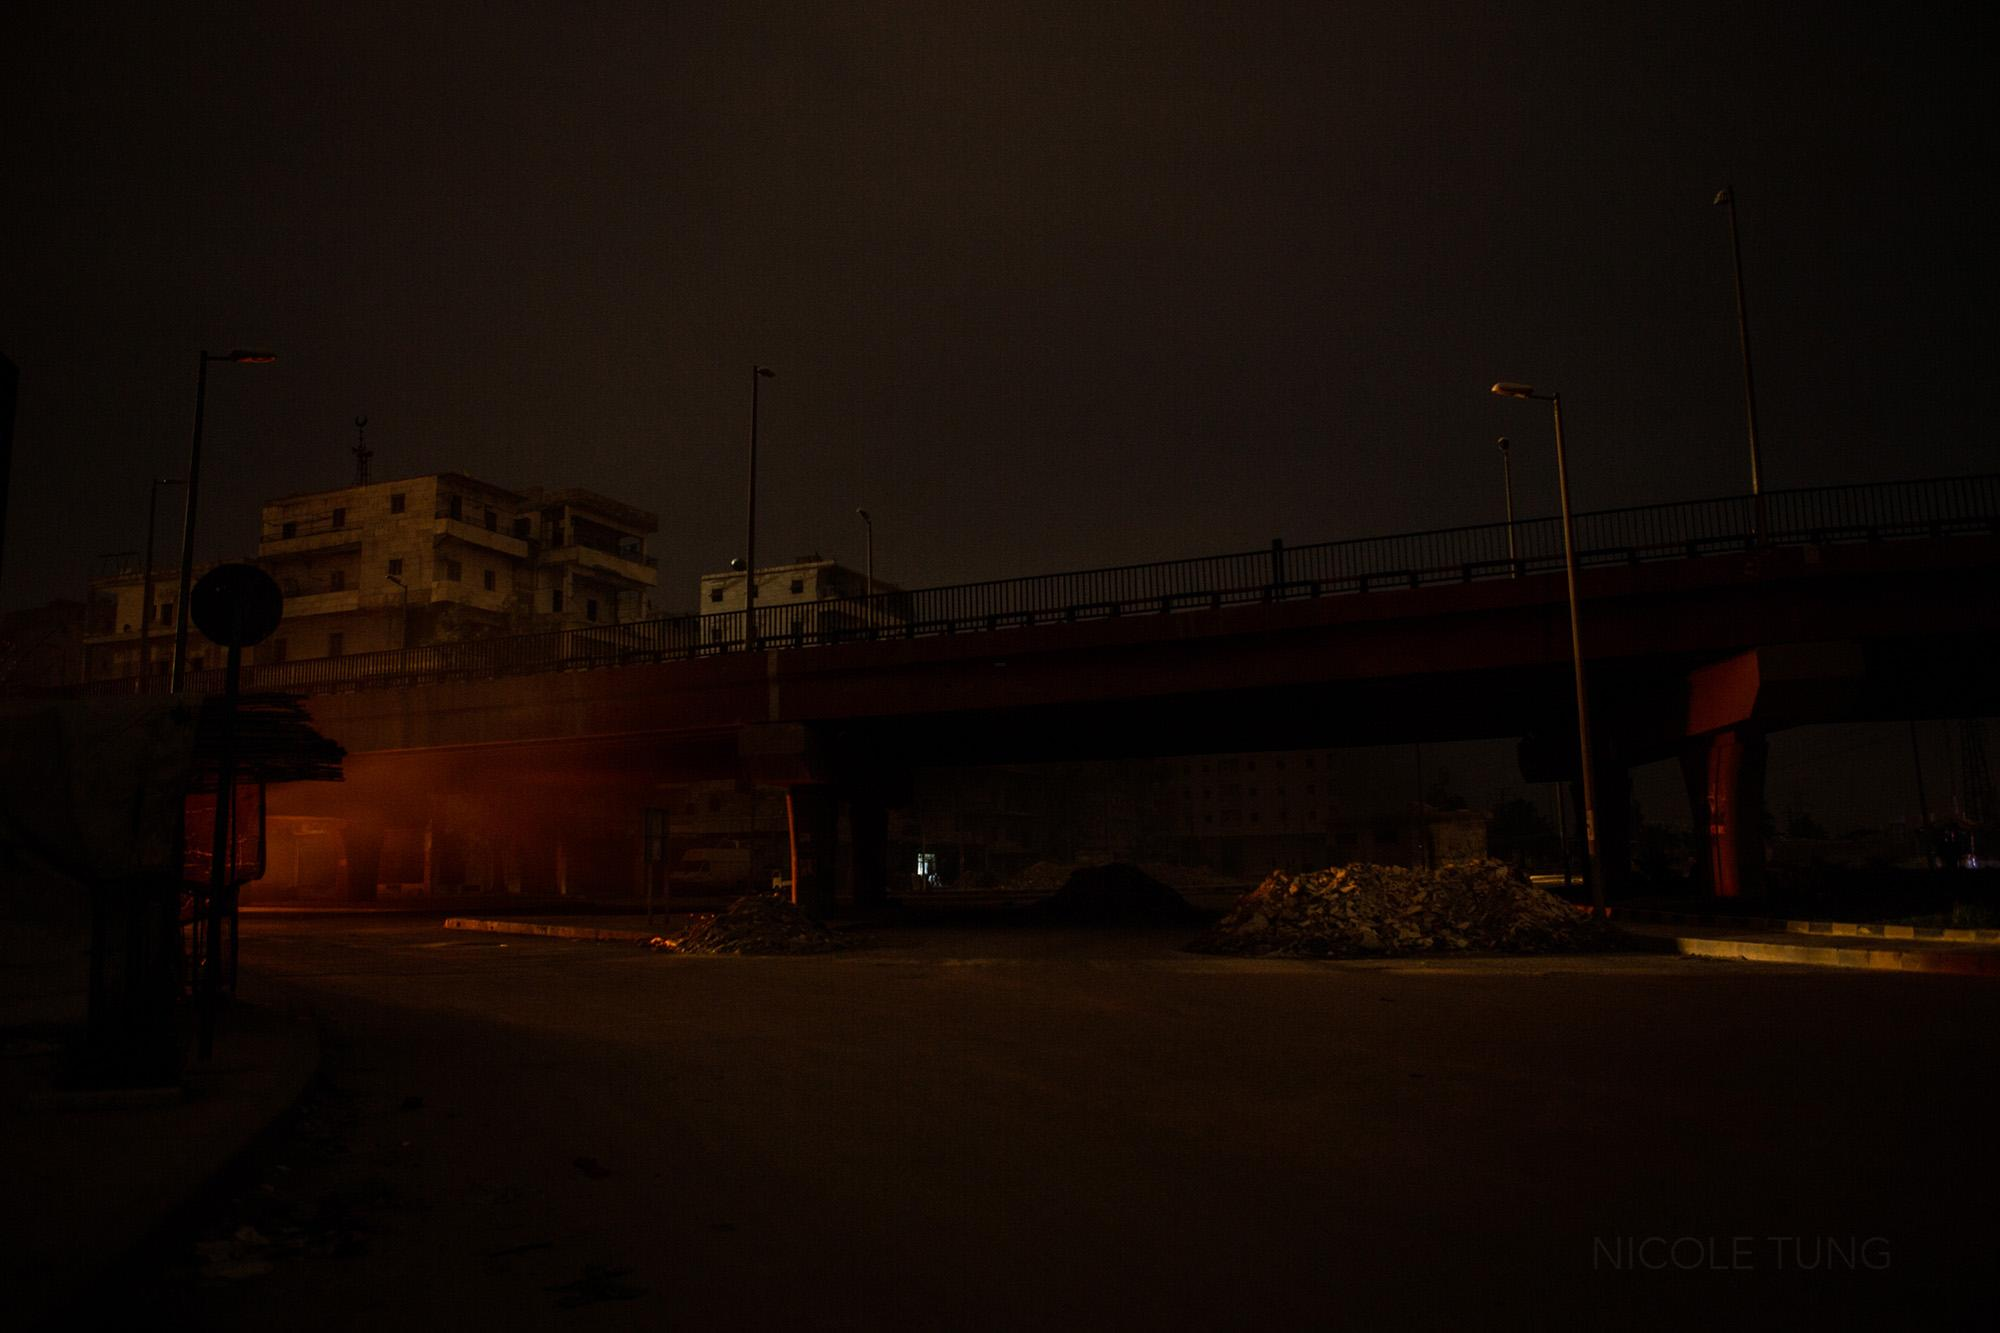 A bridge lit by car lights is seen in an opposition-held area, Aleppo, Syria. March 2013.